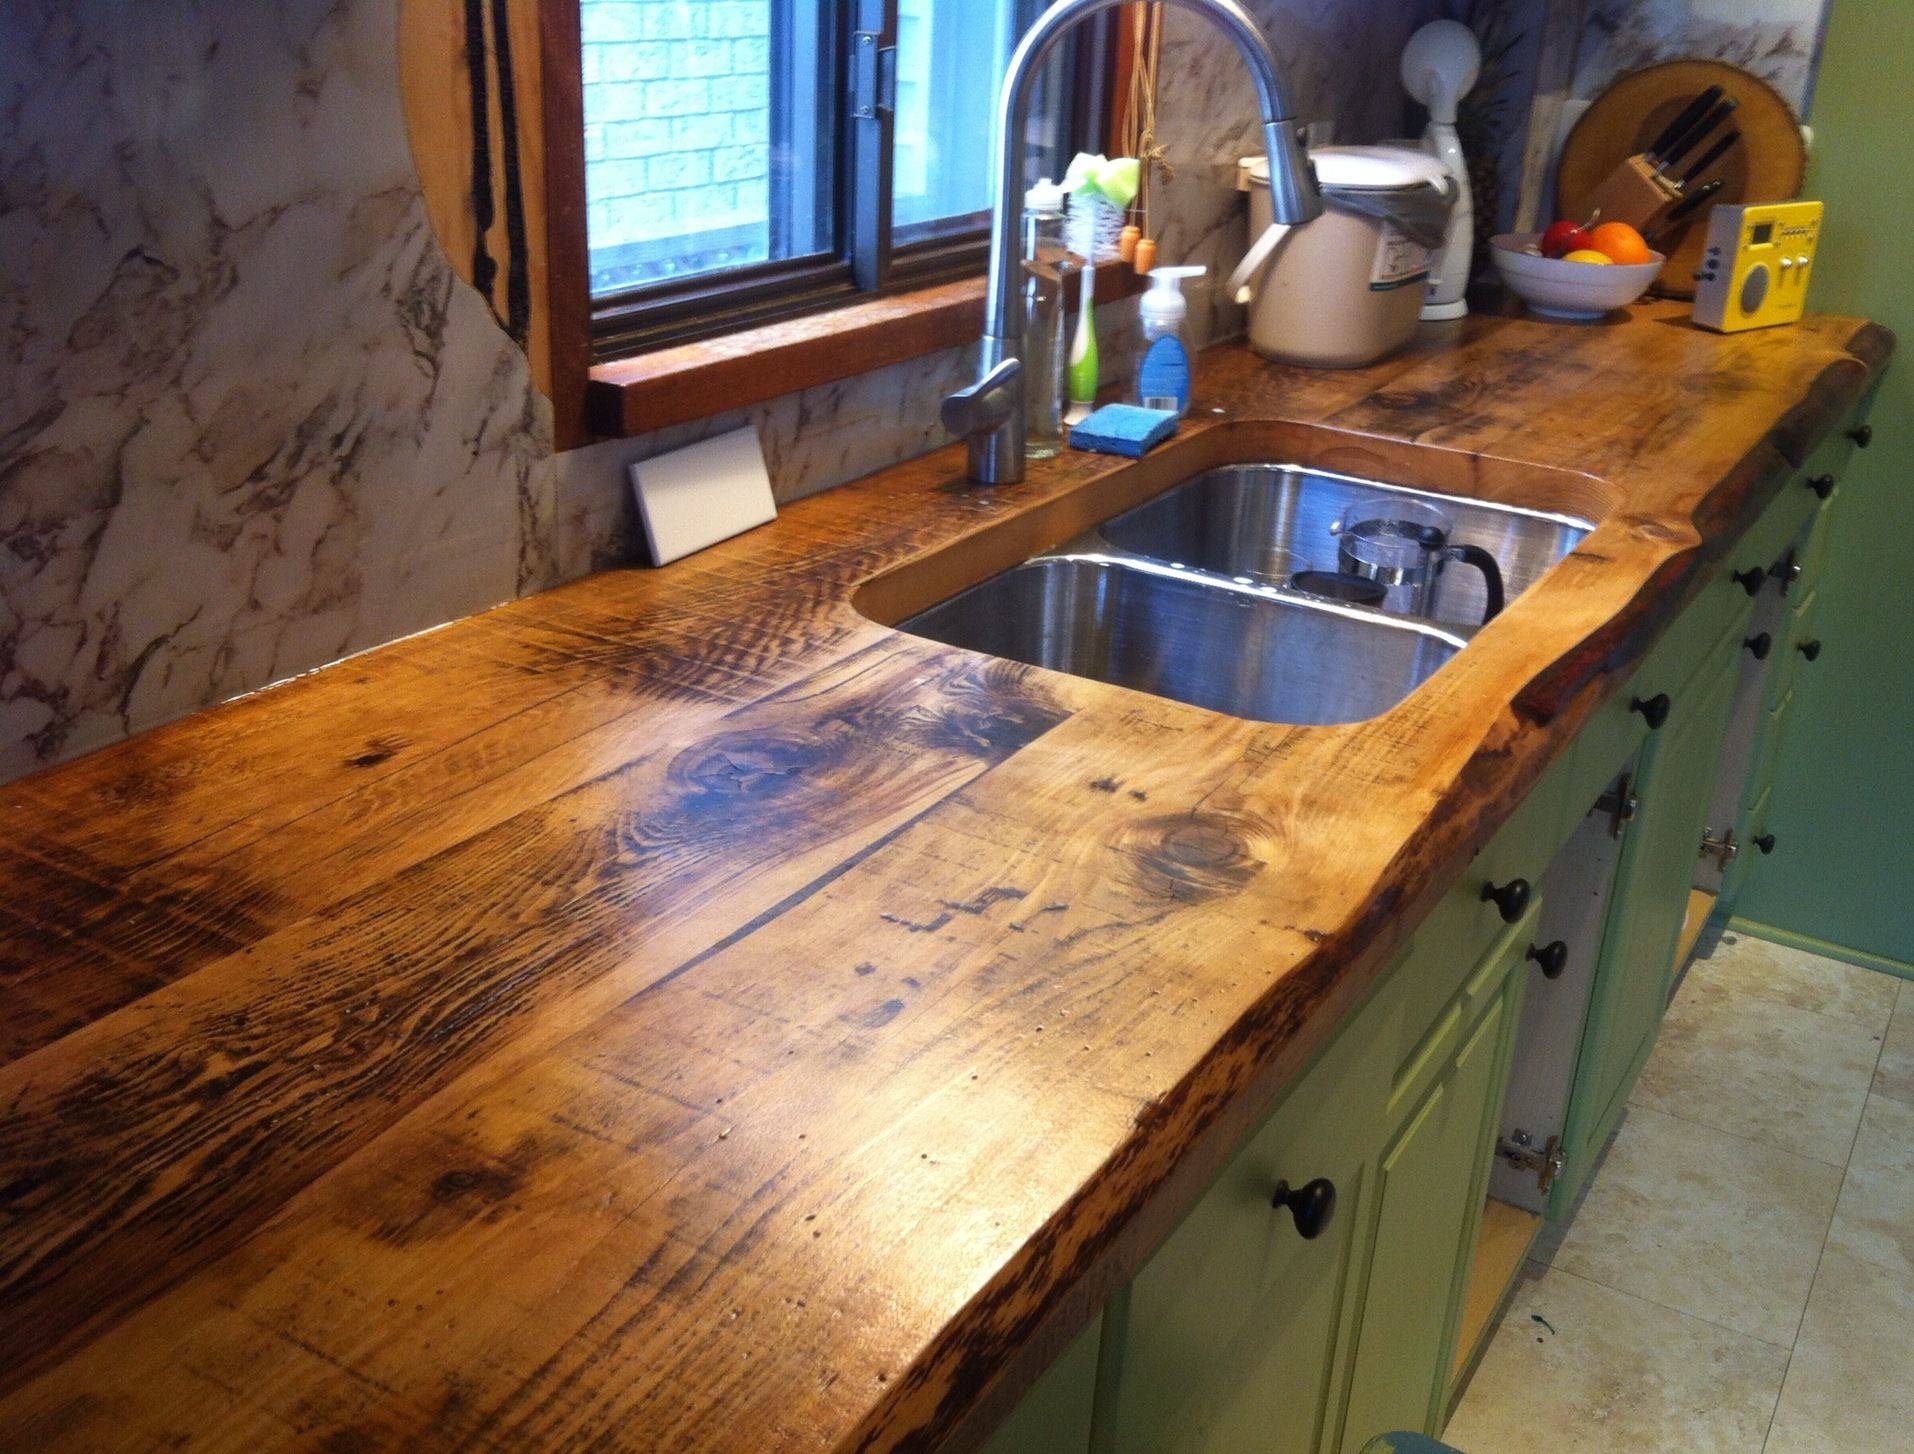 awesome live edge kitchen counter built with 2 inch thick hemlock floor boards by barnboardstore. Black Bedroom Furniture Sets. Home Design Ideas